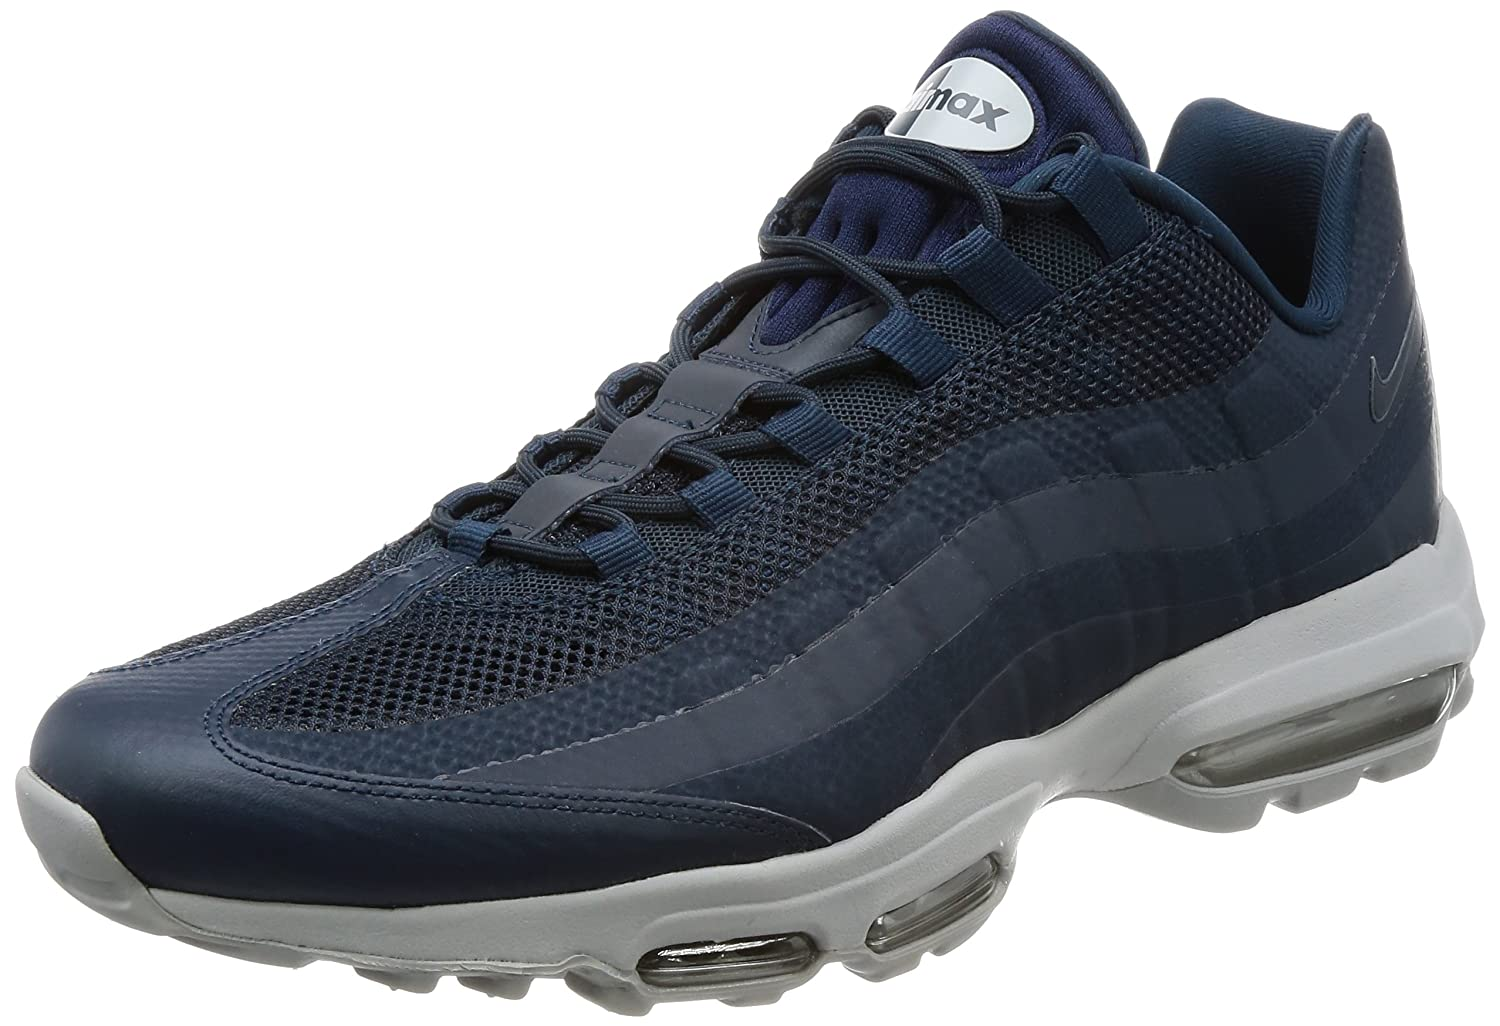 804c63a3ee Nike Air Max 95 Ultra Essential Mens Running Trainers 857910 Sneakers Shoes:  Amazon.com.au: Fashion